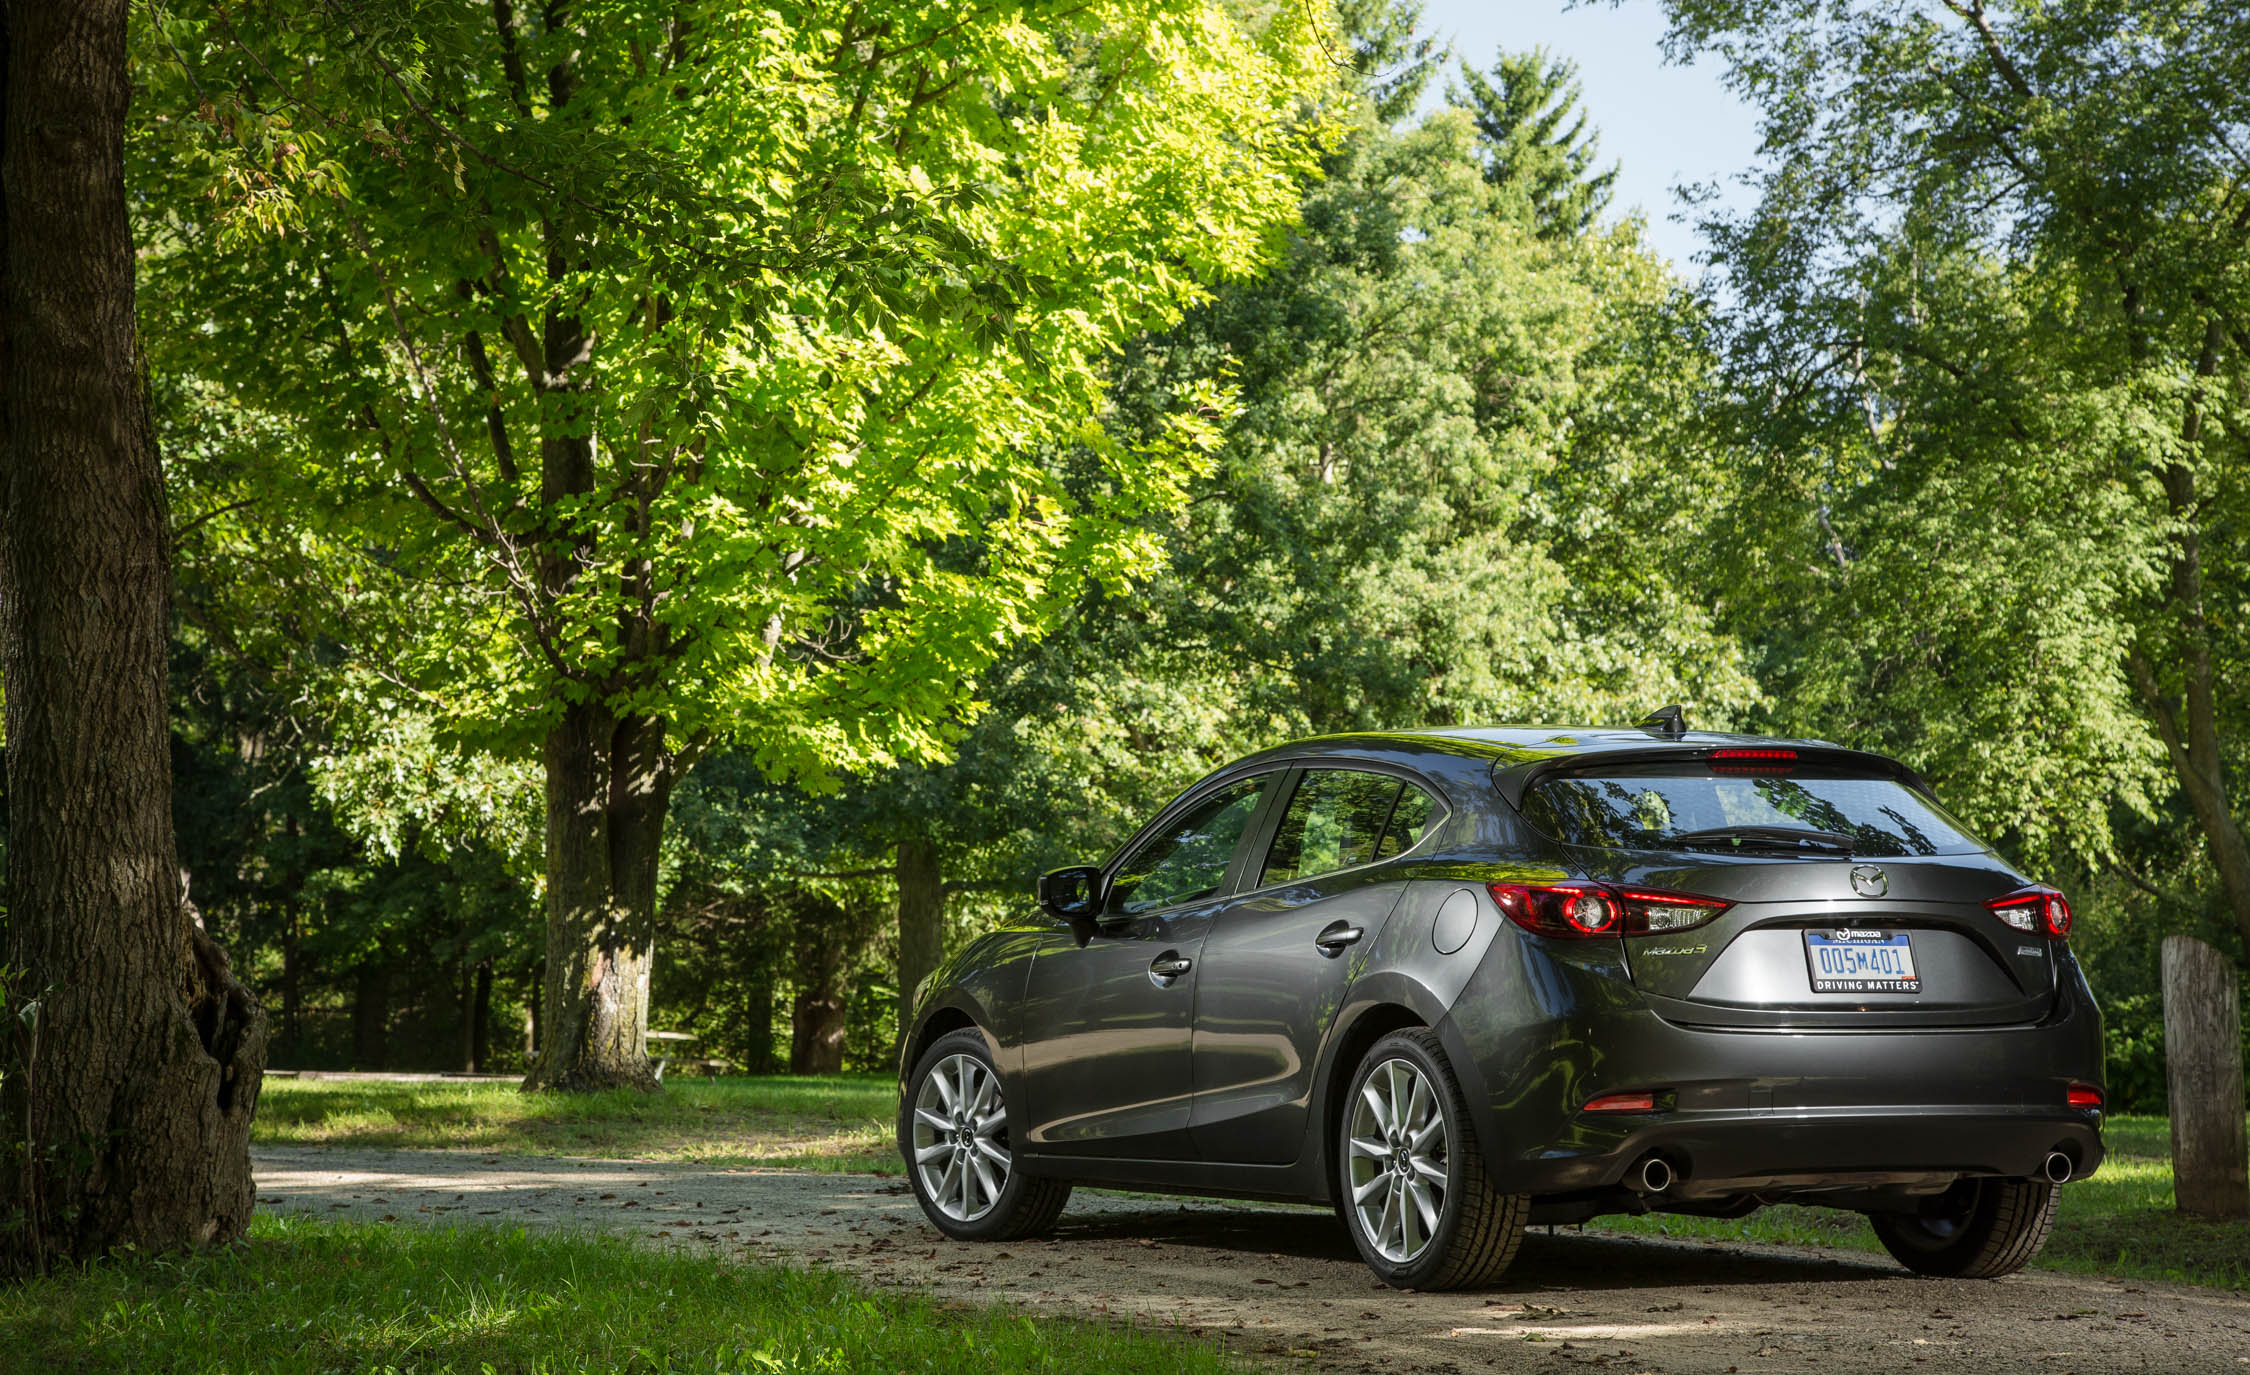 2017 Mazda3 Hatchback Exterior Rear And Side View (Photo 27 of 40)